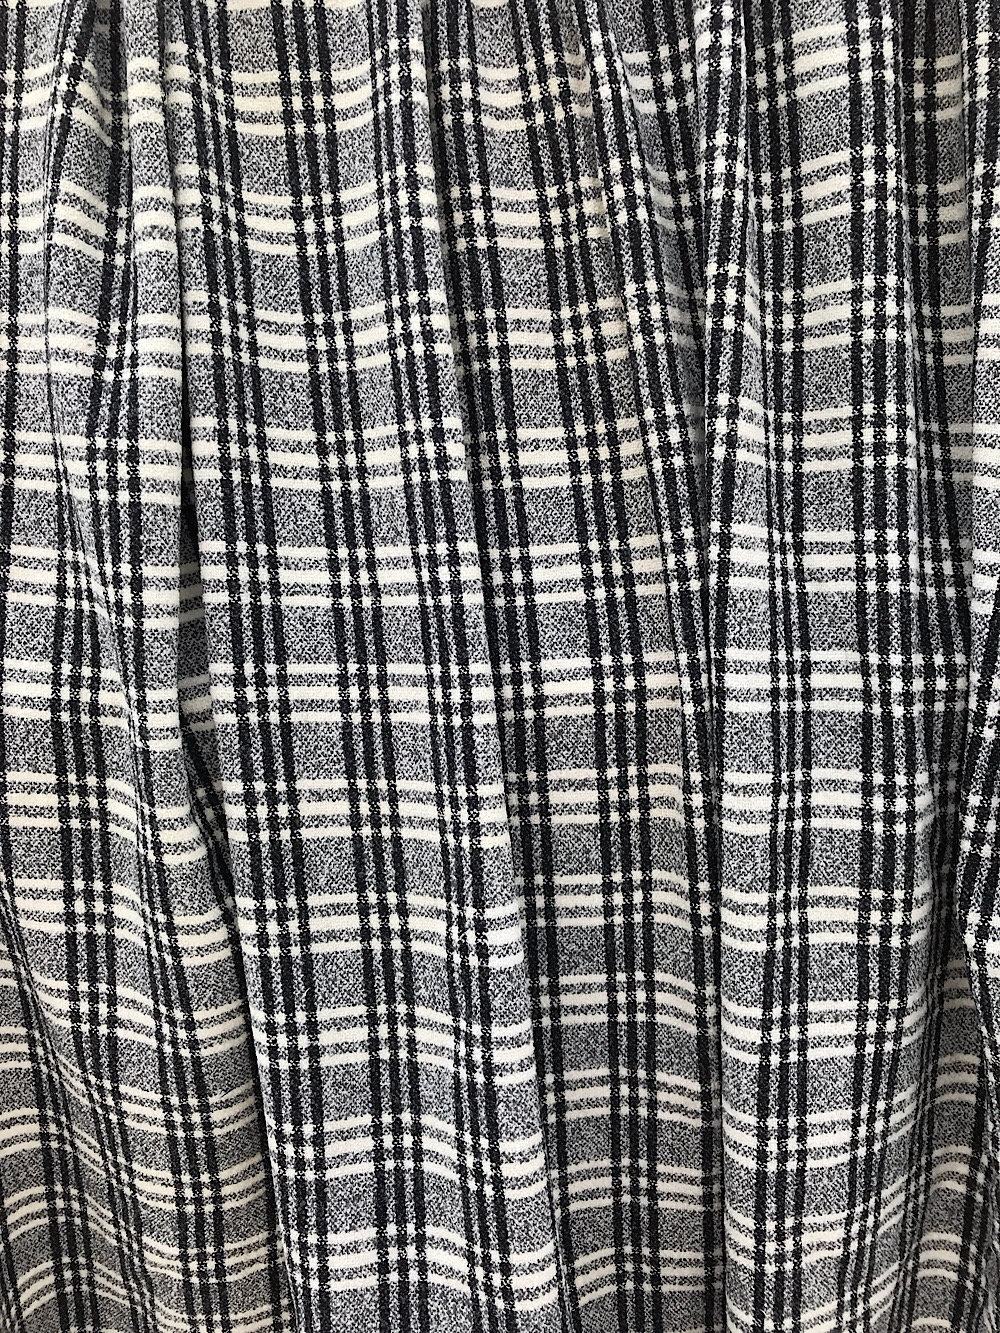 black on white check fabric Tartan pure wool tweed, prince of Wales,  fancy wool coat skirt suit cape stole fabric prince de galles